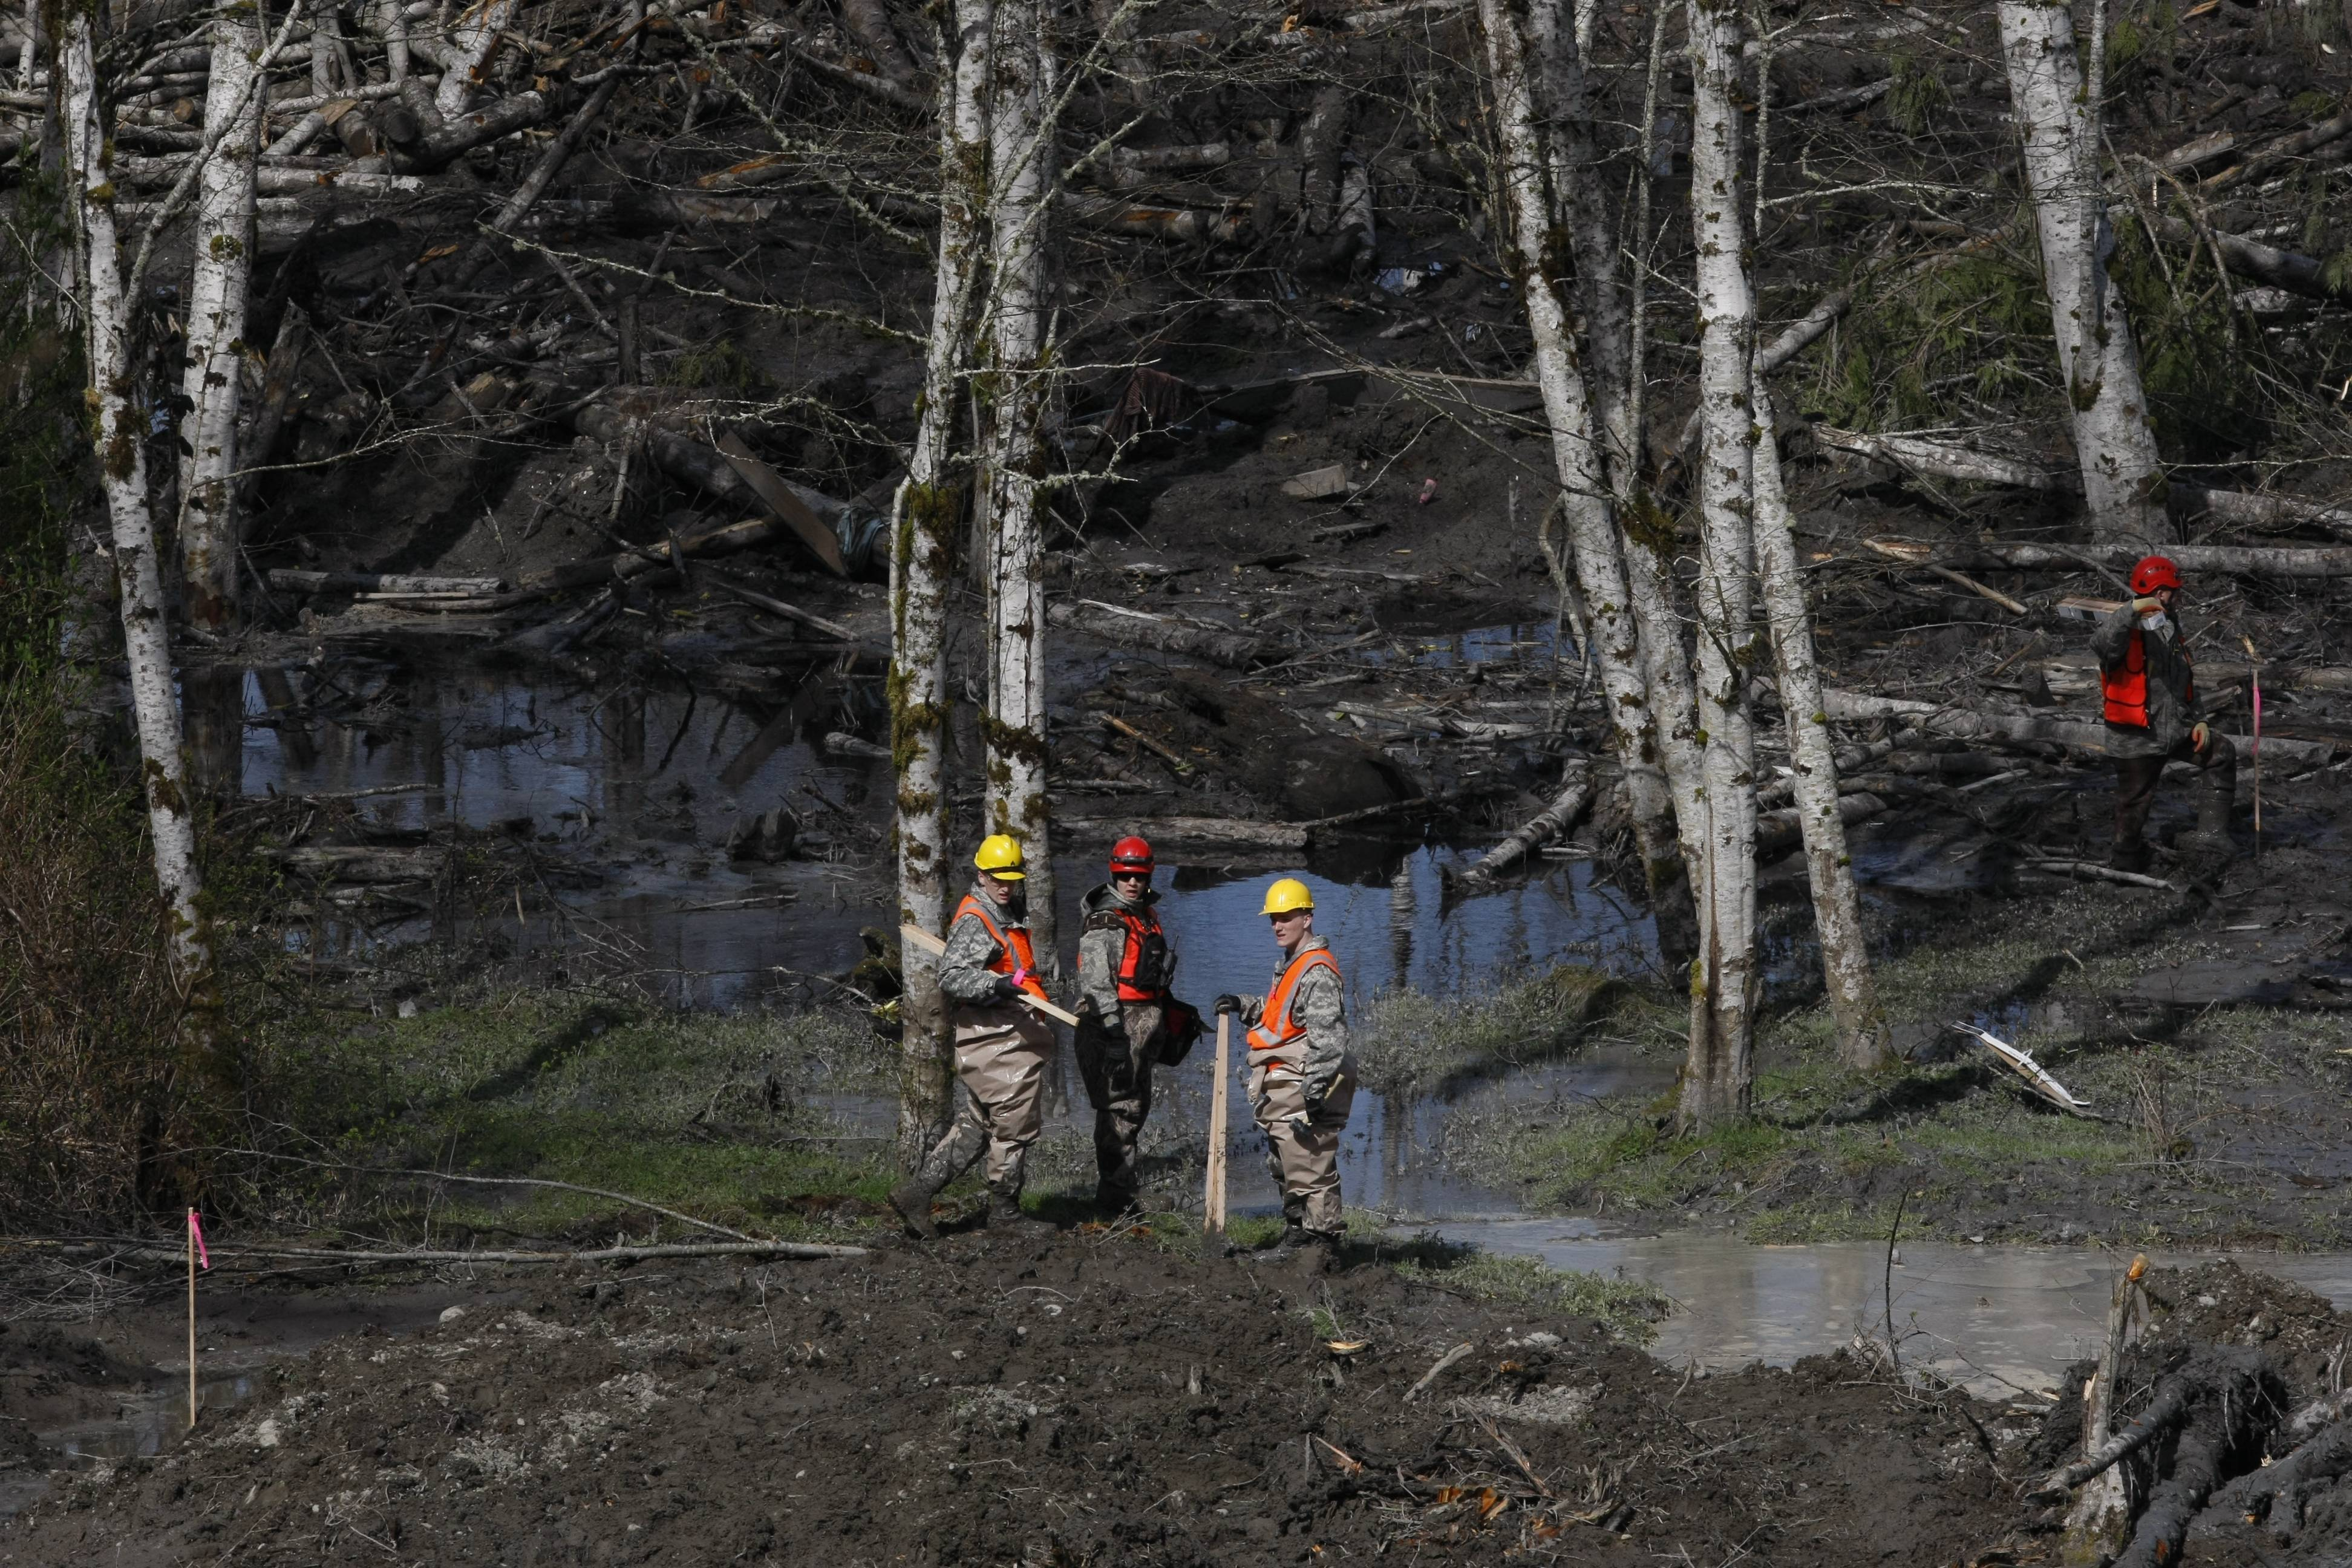 Workers search for articles and belongings at the scene of the deadly March 22 mudslide, Monday in Oso, Wash.